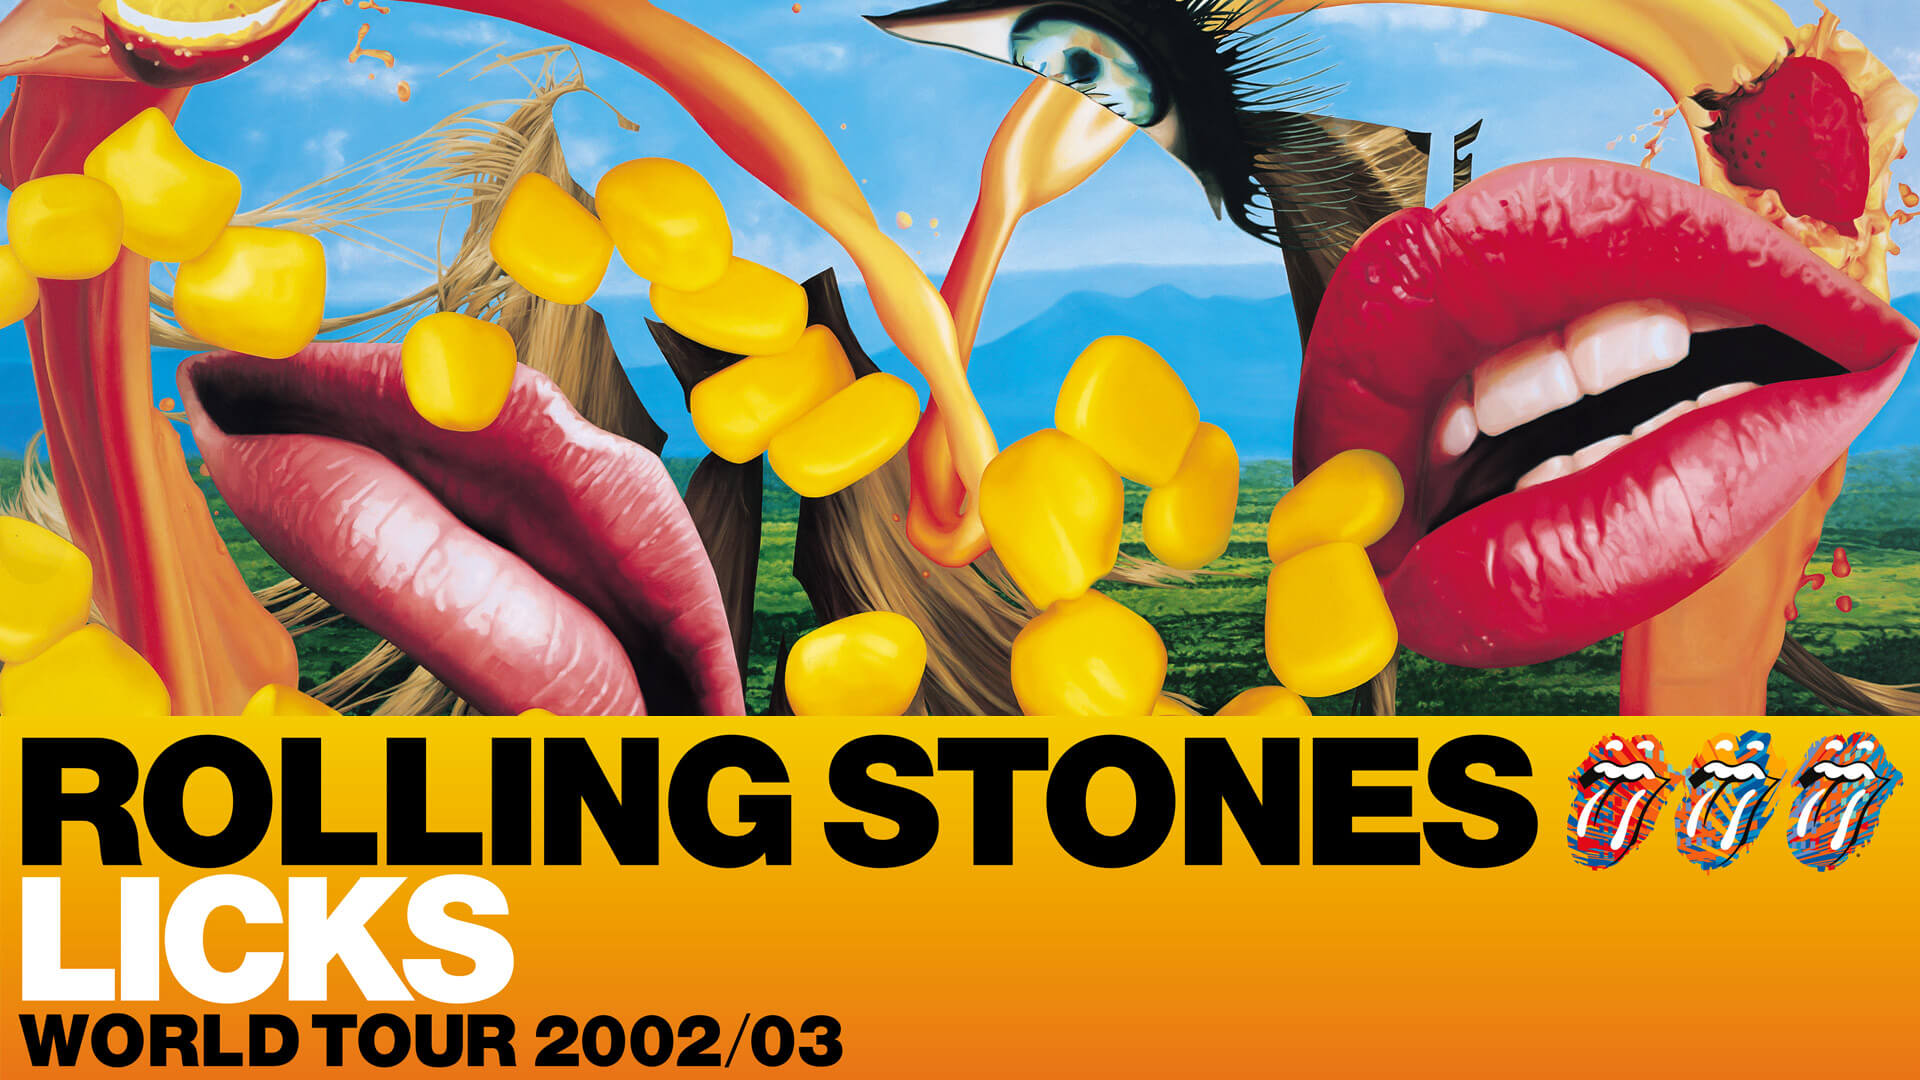 rolling stones licks tour identity posters promotions